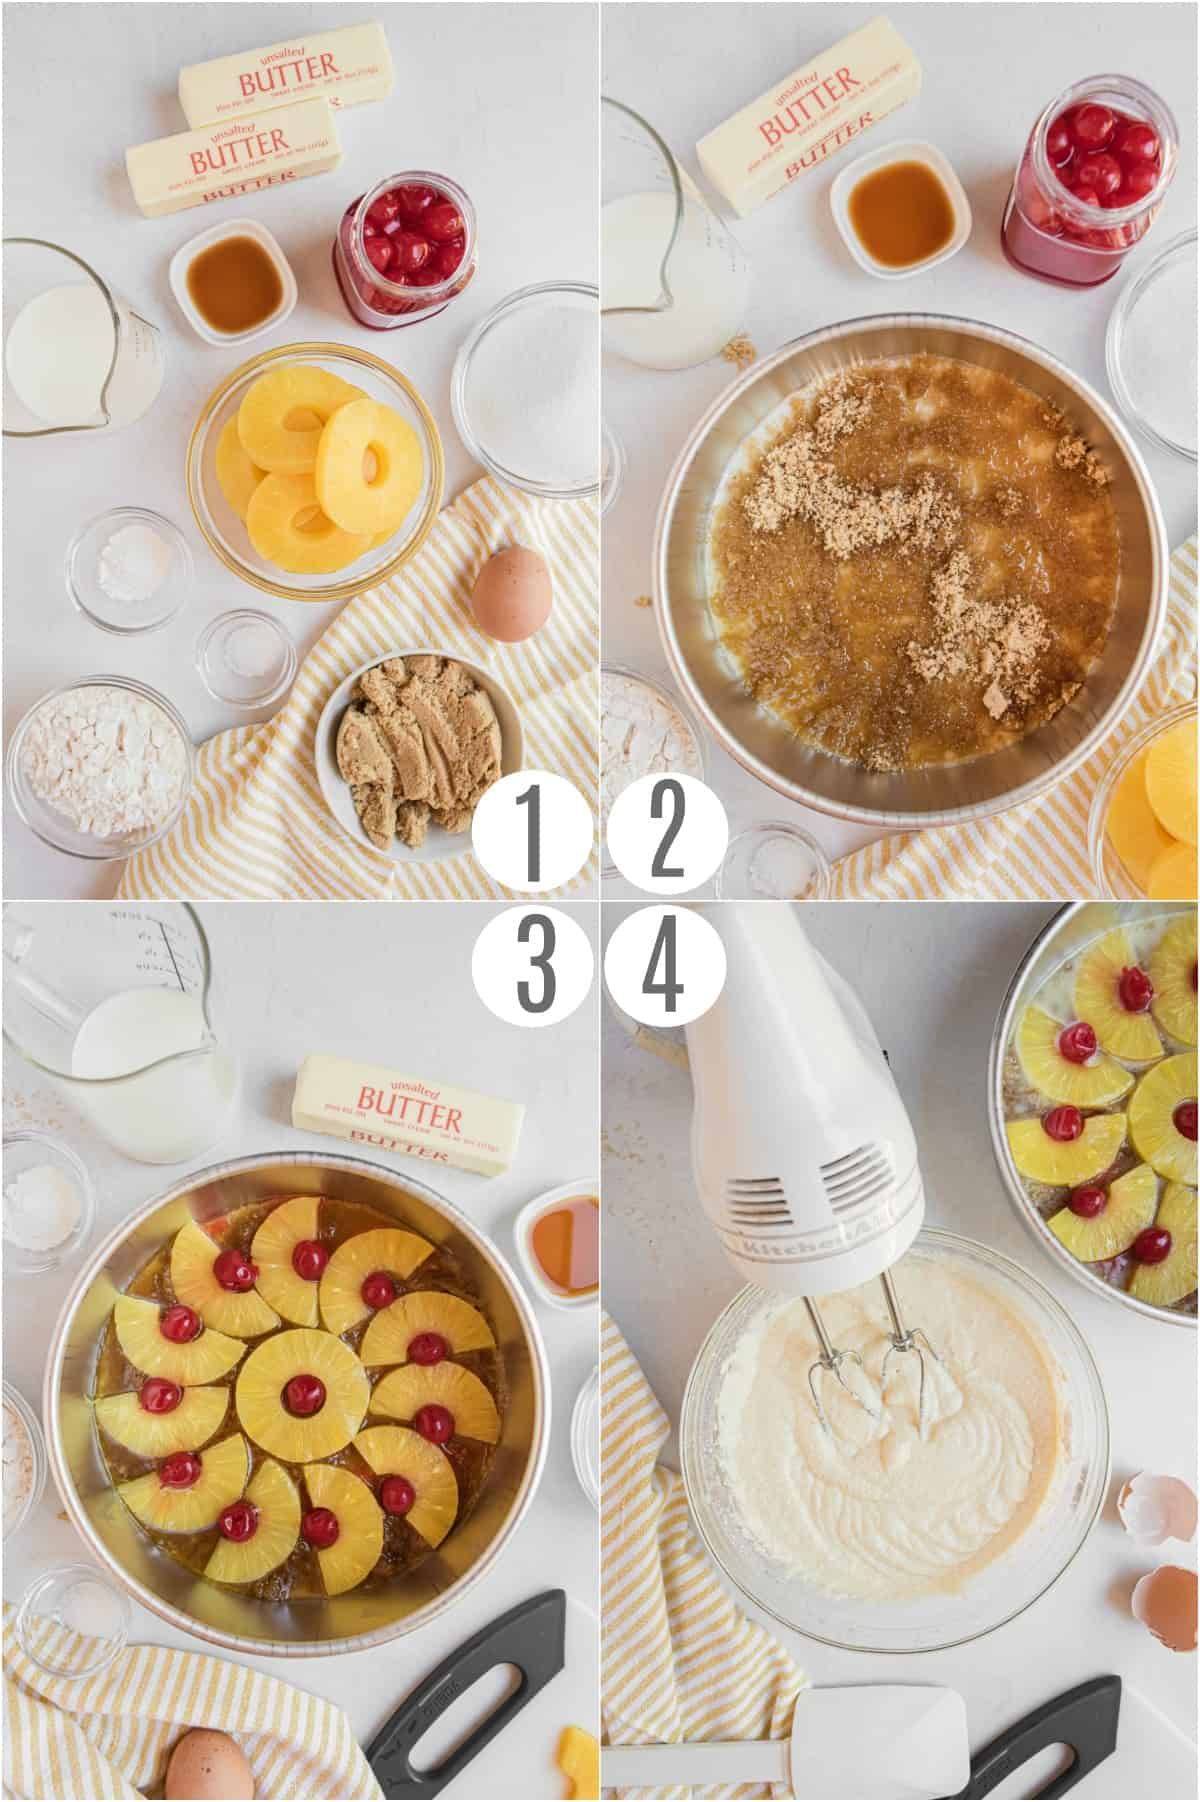 Step by step photos showing how to make pineapple upside down cake.